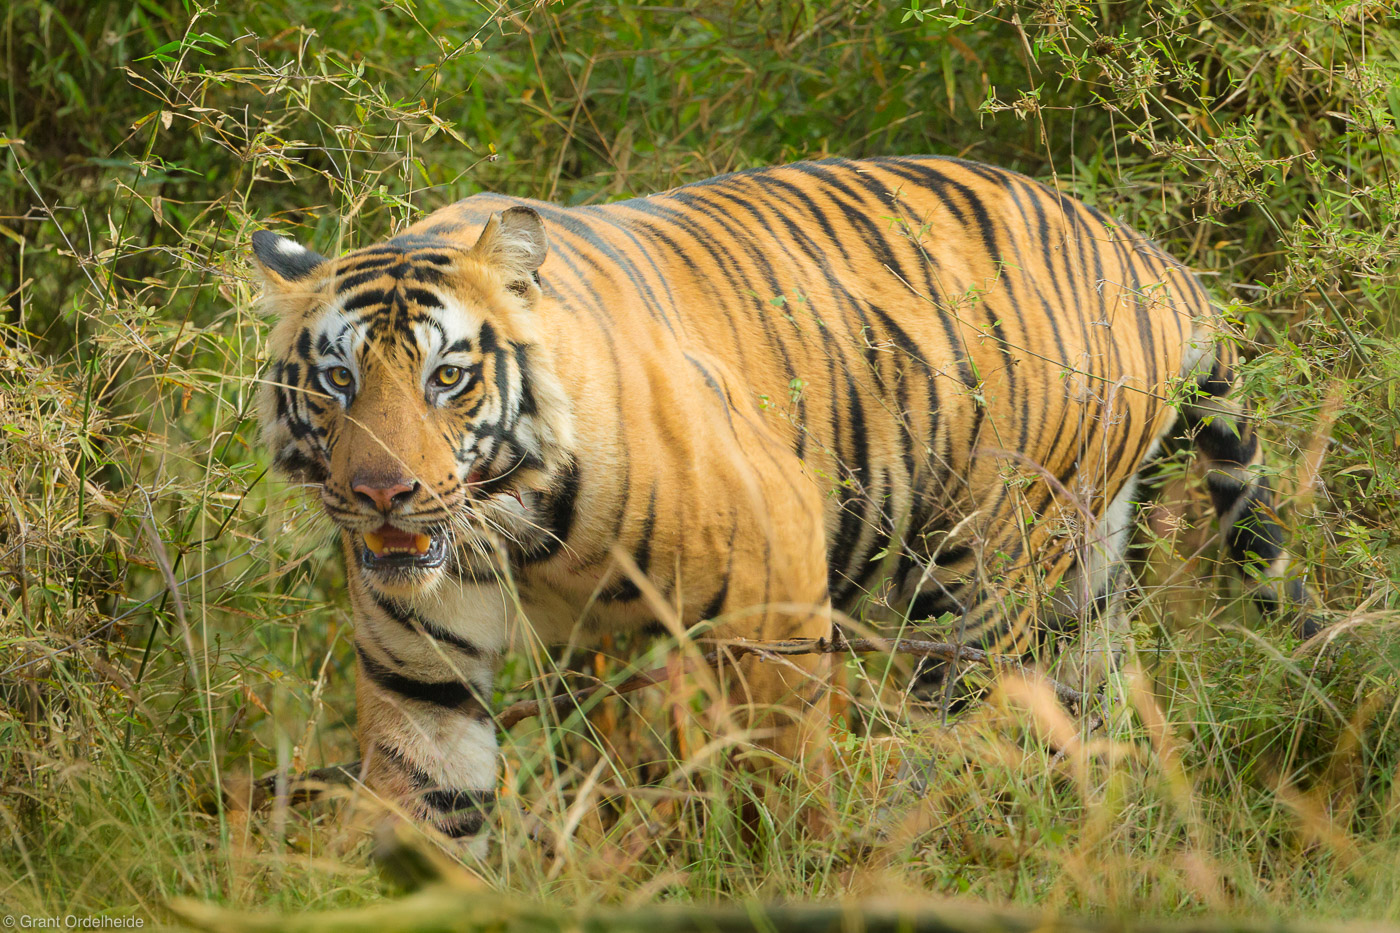 wild, tiger, bengal, bandhavgarh, national, park, population, declined, tigers, captive, zoos, indian, government, prese, photo